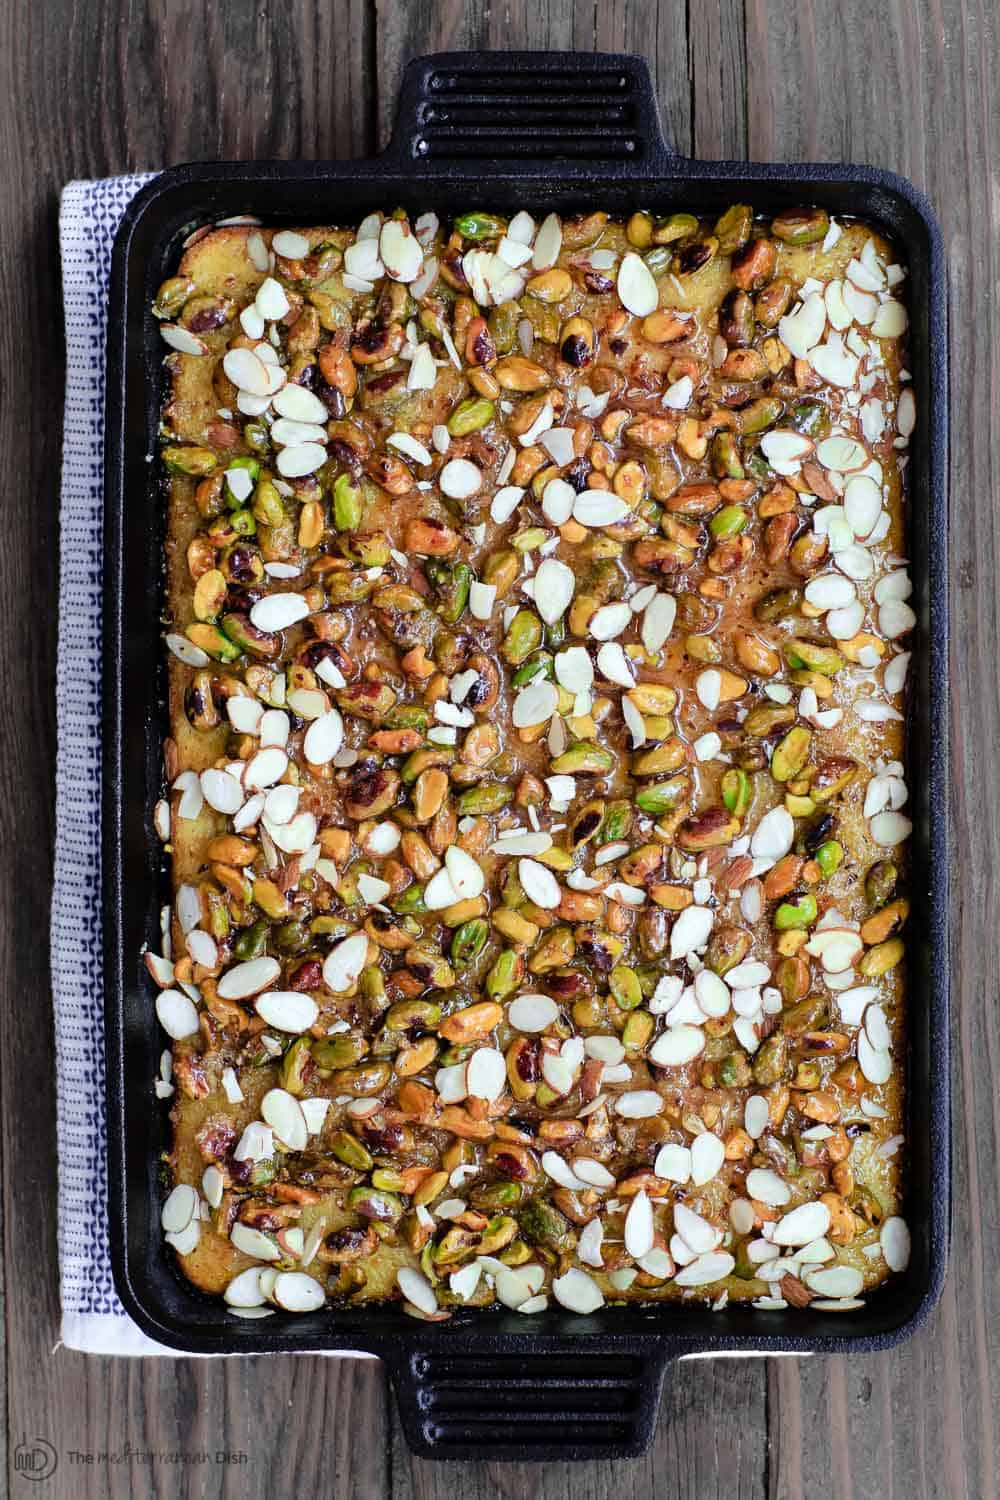 Greek Honey Cake in large pan. Topped with pistachios and slivered almonds